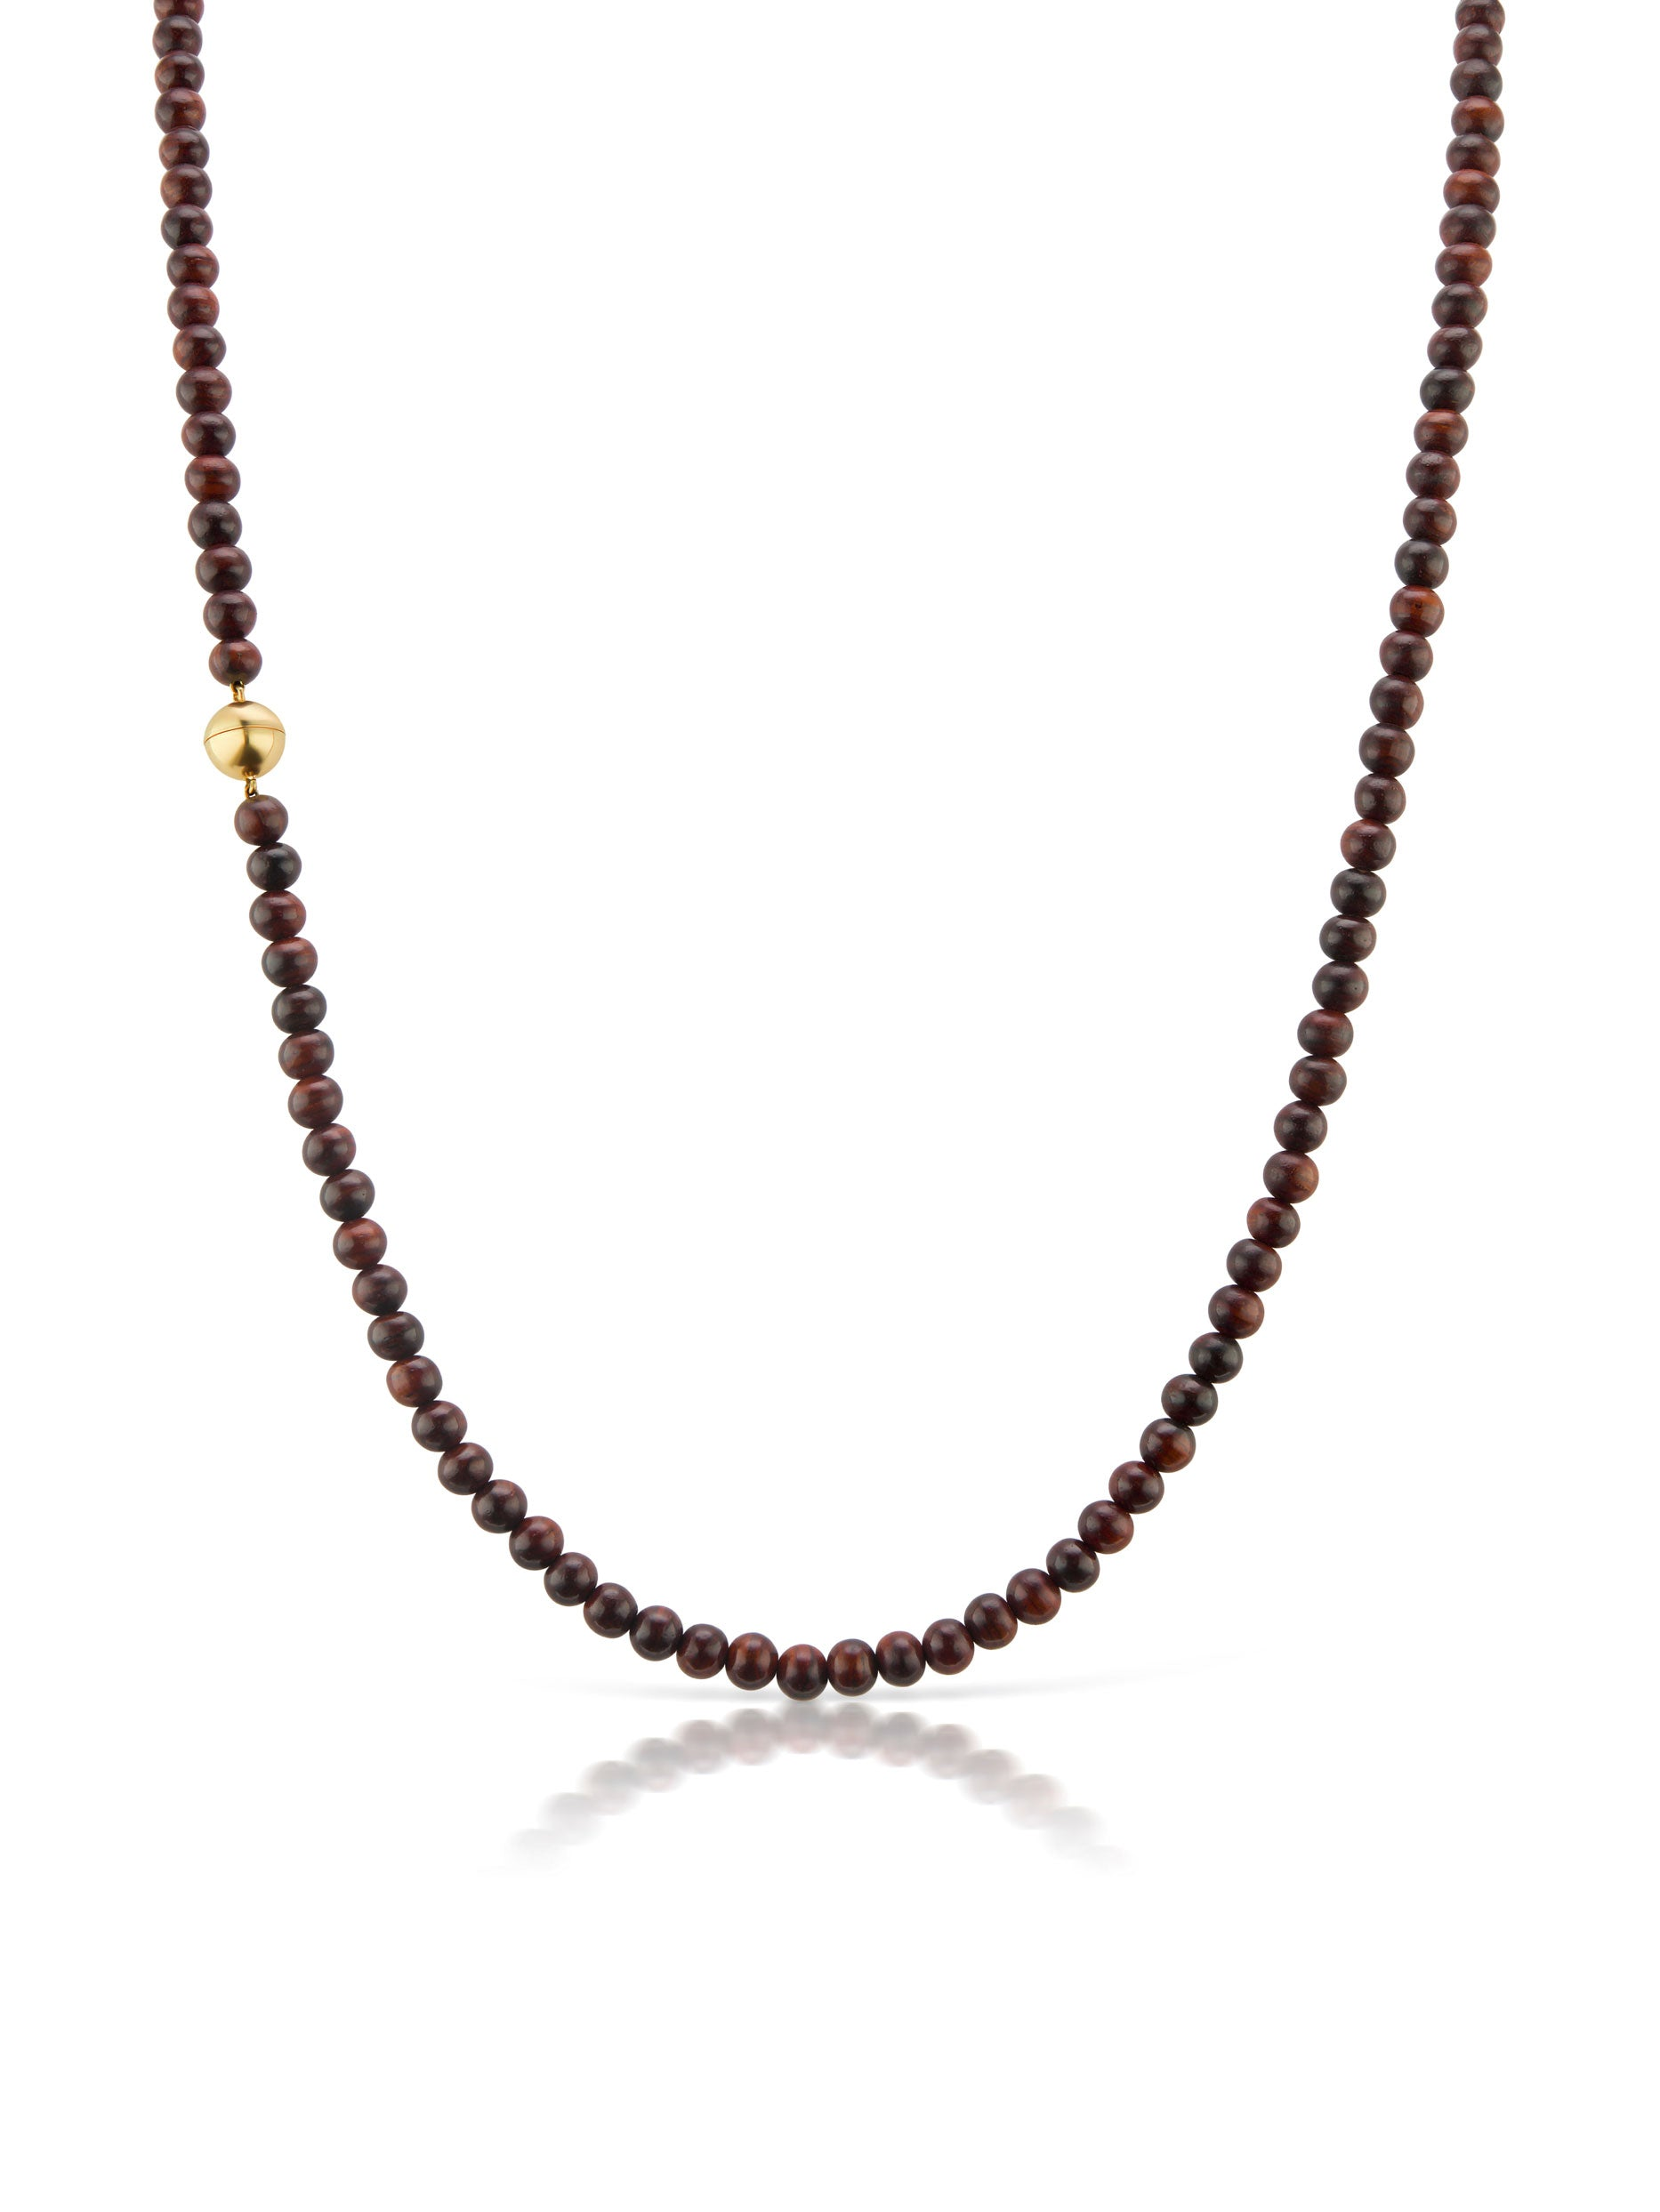 Voyager Long Single Strand Wood Bead Necklace